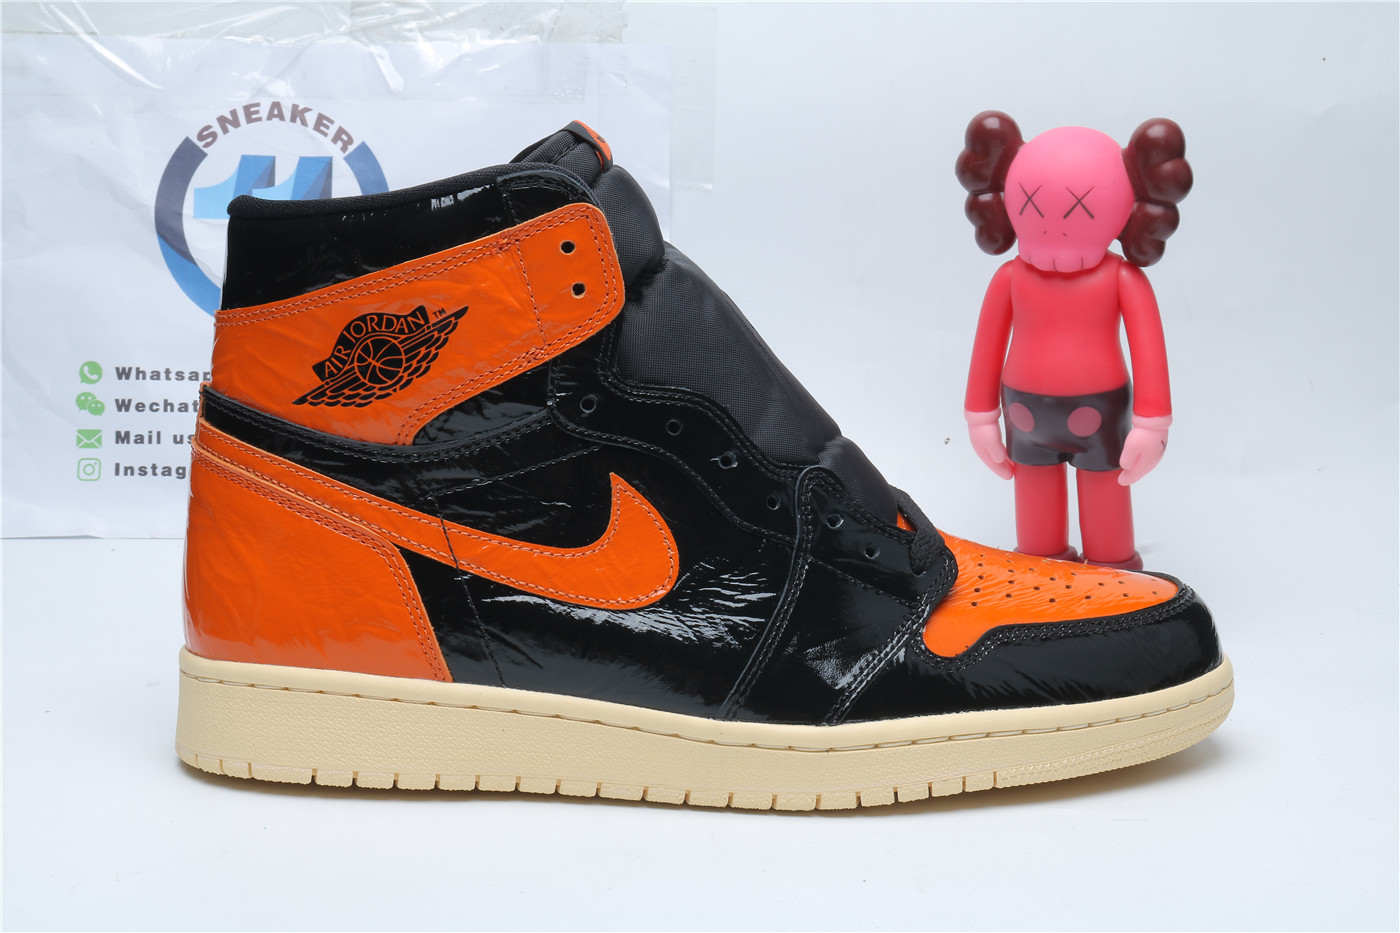 3rd Jordan 1 Retro Shattered Backboard,All Products : Eleven Kicks, Eleven Kicks